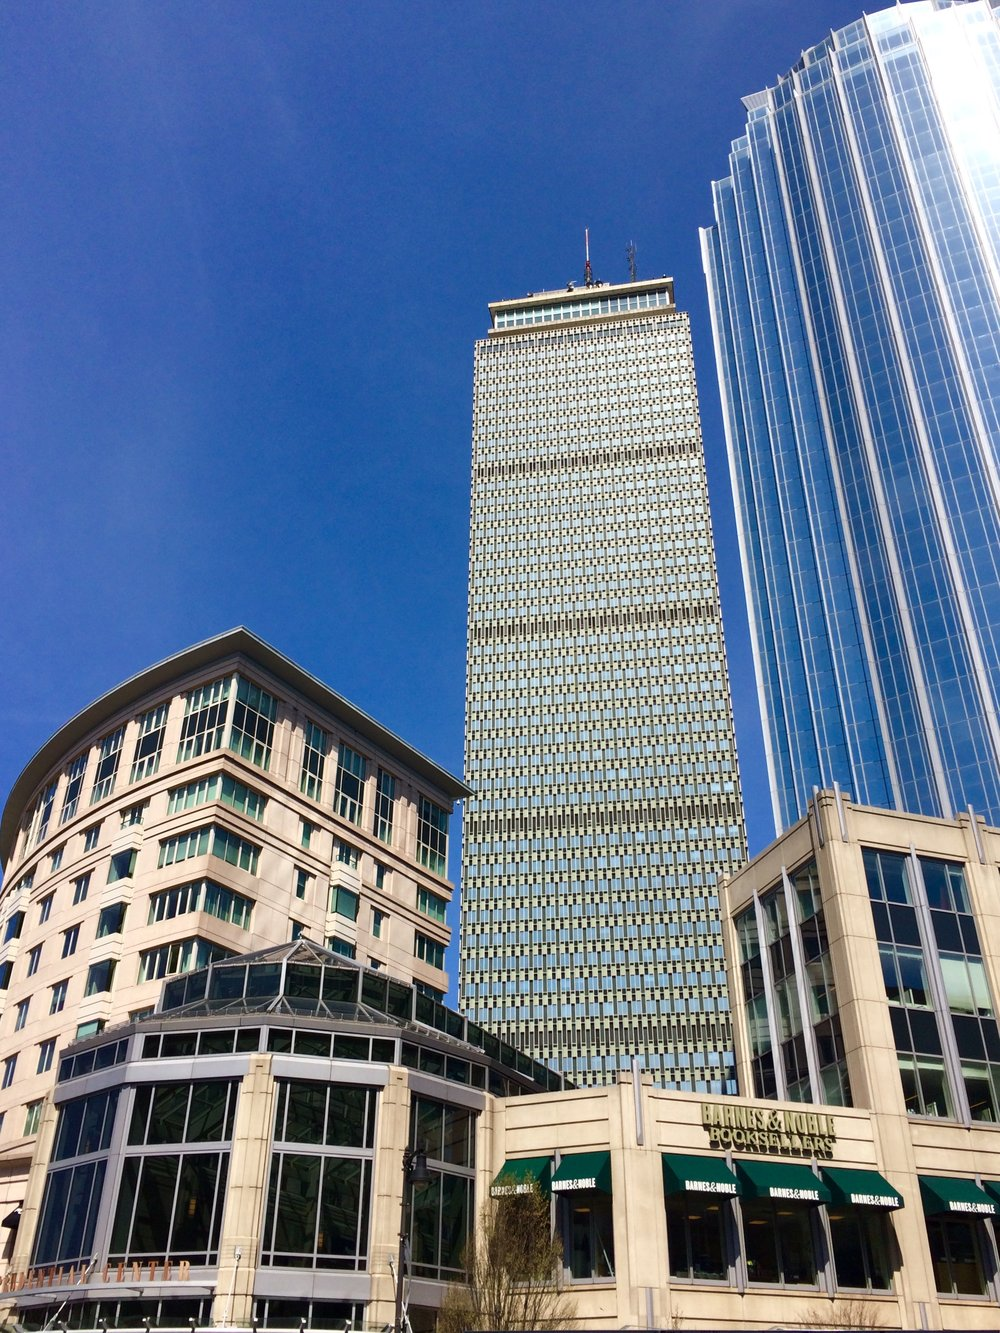 While the Prudential Center is not new, it is a relatively more recent example of Back Bay's architecture compared to the rest of the neighborhood.  Credit: Max Winter